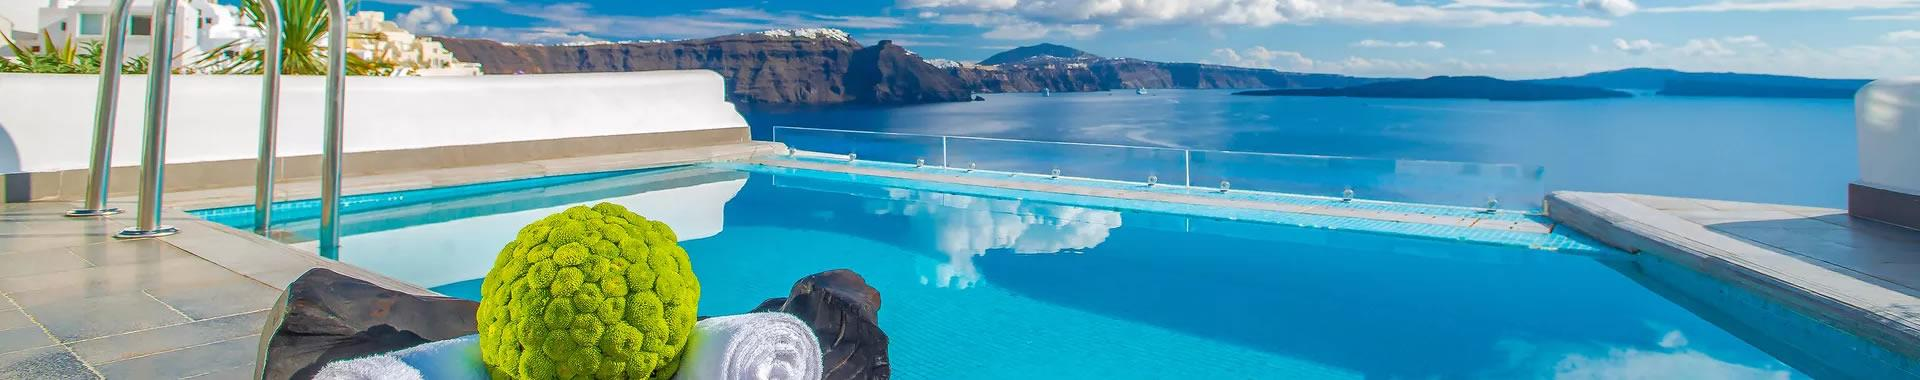 Firostefani, Megalochori or Perivolos Santorini Hotels with Swimming Pools